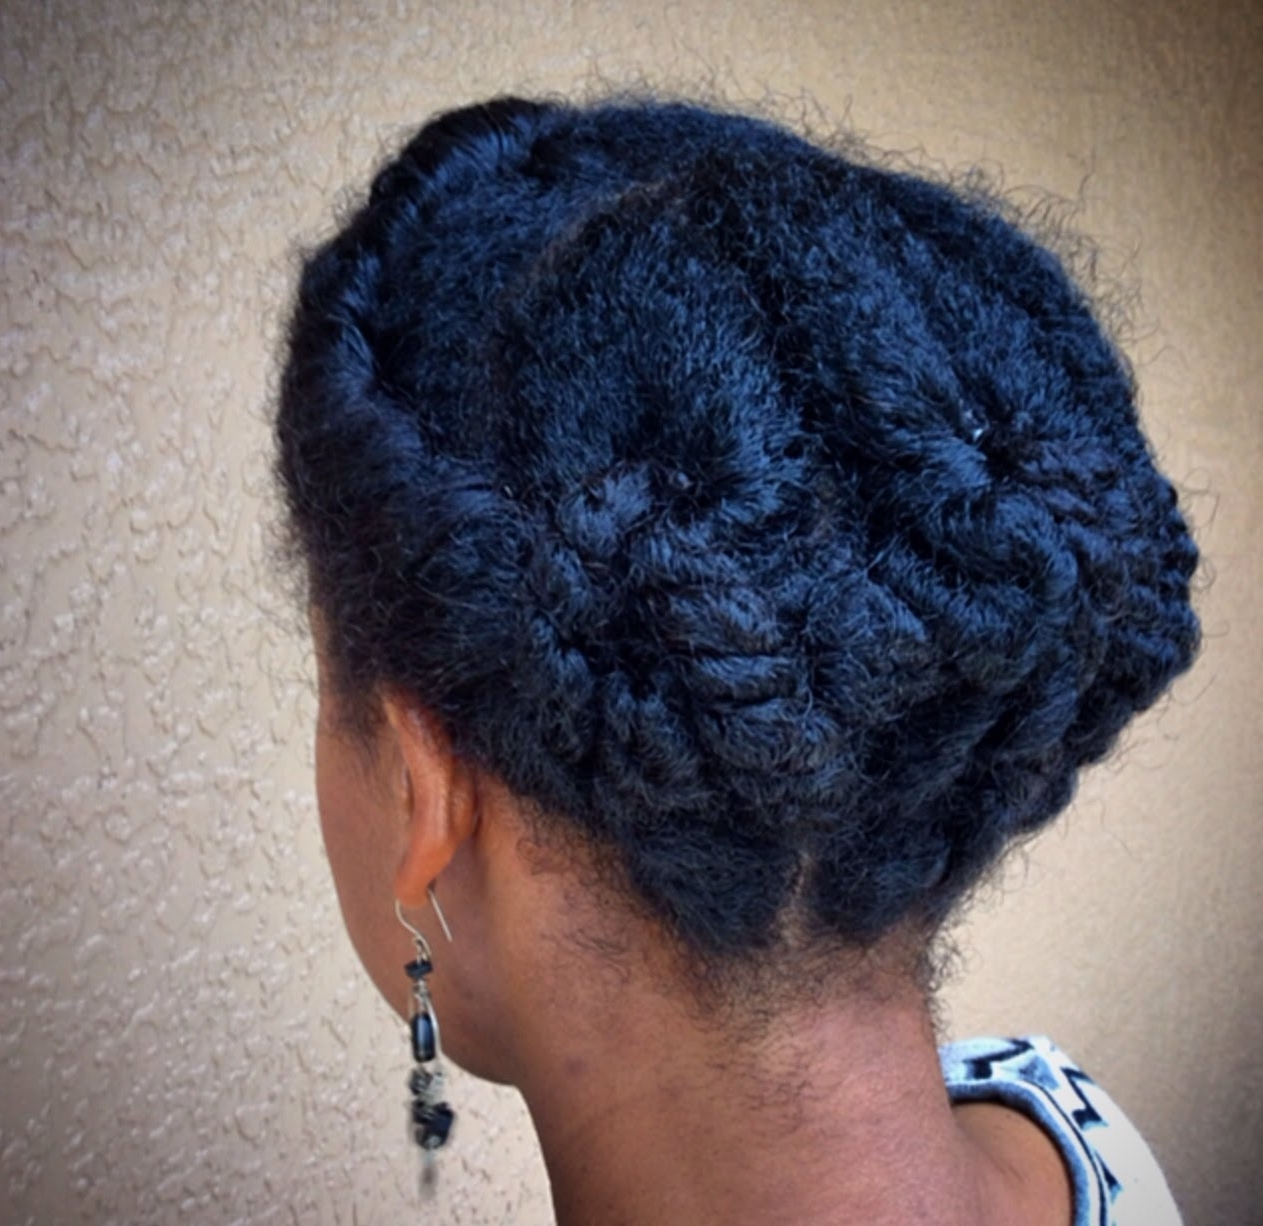 Formal Hairstyles For Protective Hairstyles For Medium Length Throughout Natural Hair Updos For Medium Hair (View 14 of 15)